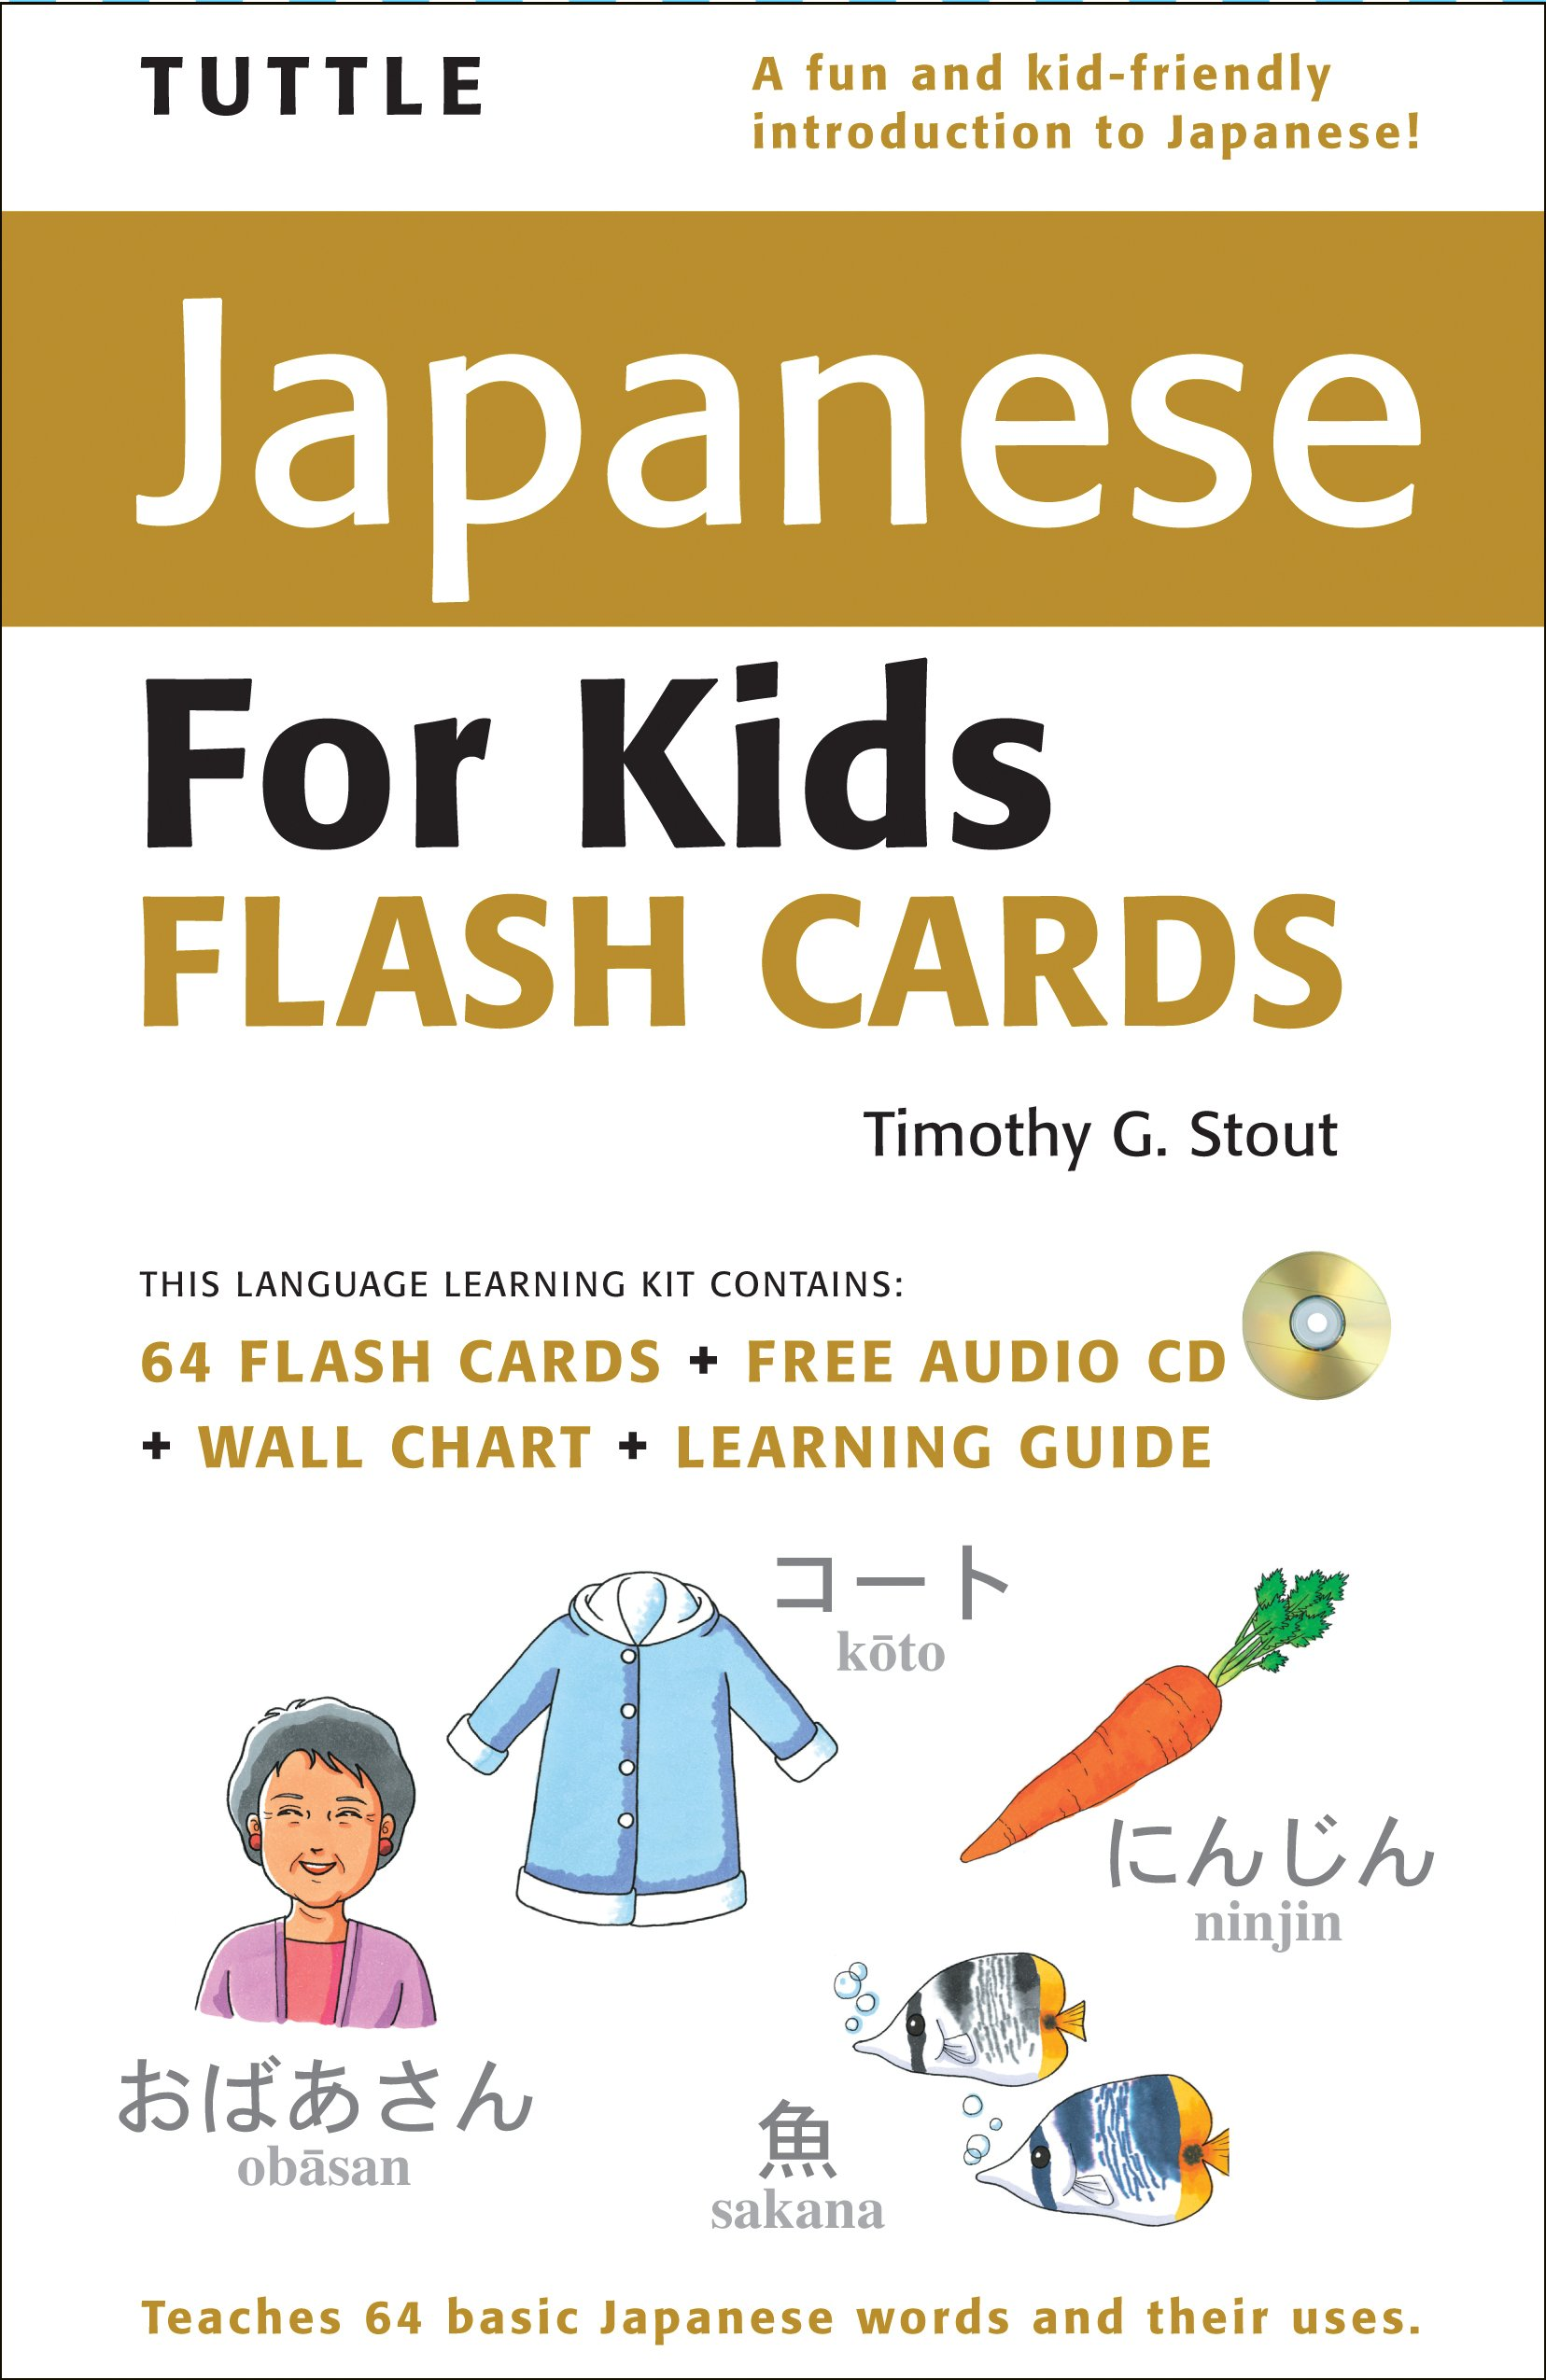 Tuttle Japanese for Kids Flash Cards Kit: [Includes 64 Flash Cards, Audio CD, Wall Chart & Learning Guide] (Tuttle Flash Cards) by Brand: Tuttle Publishing